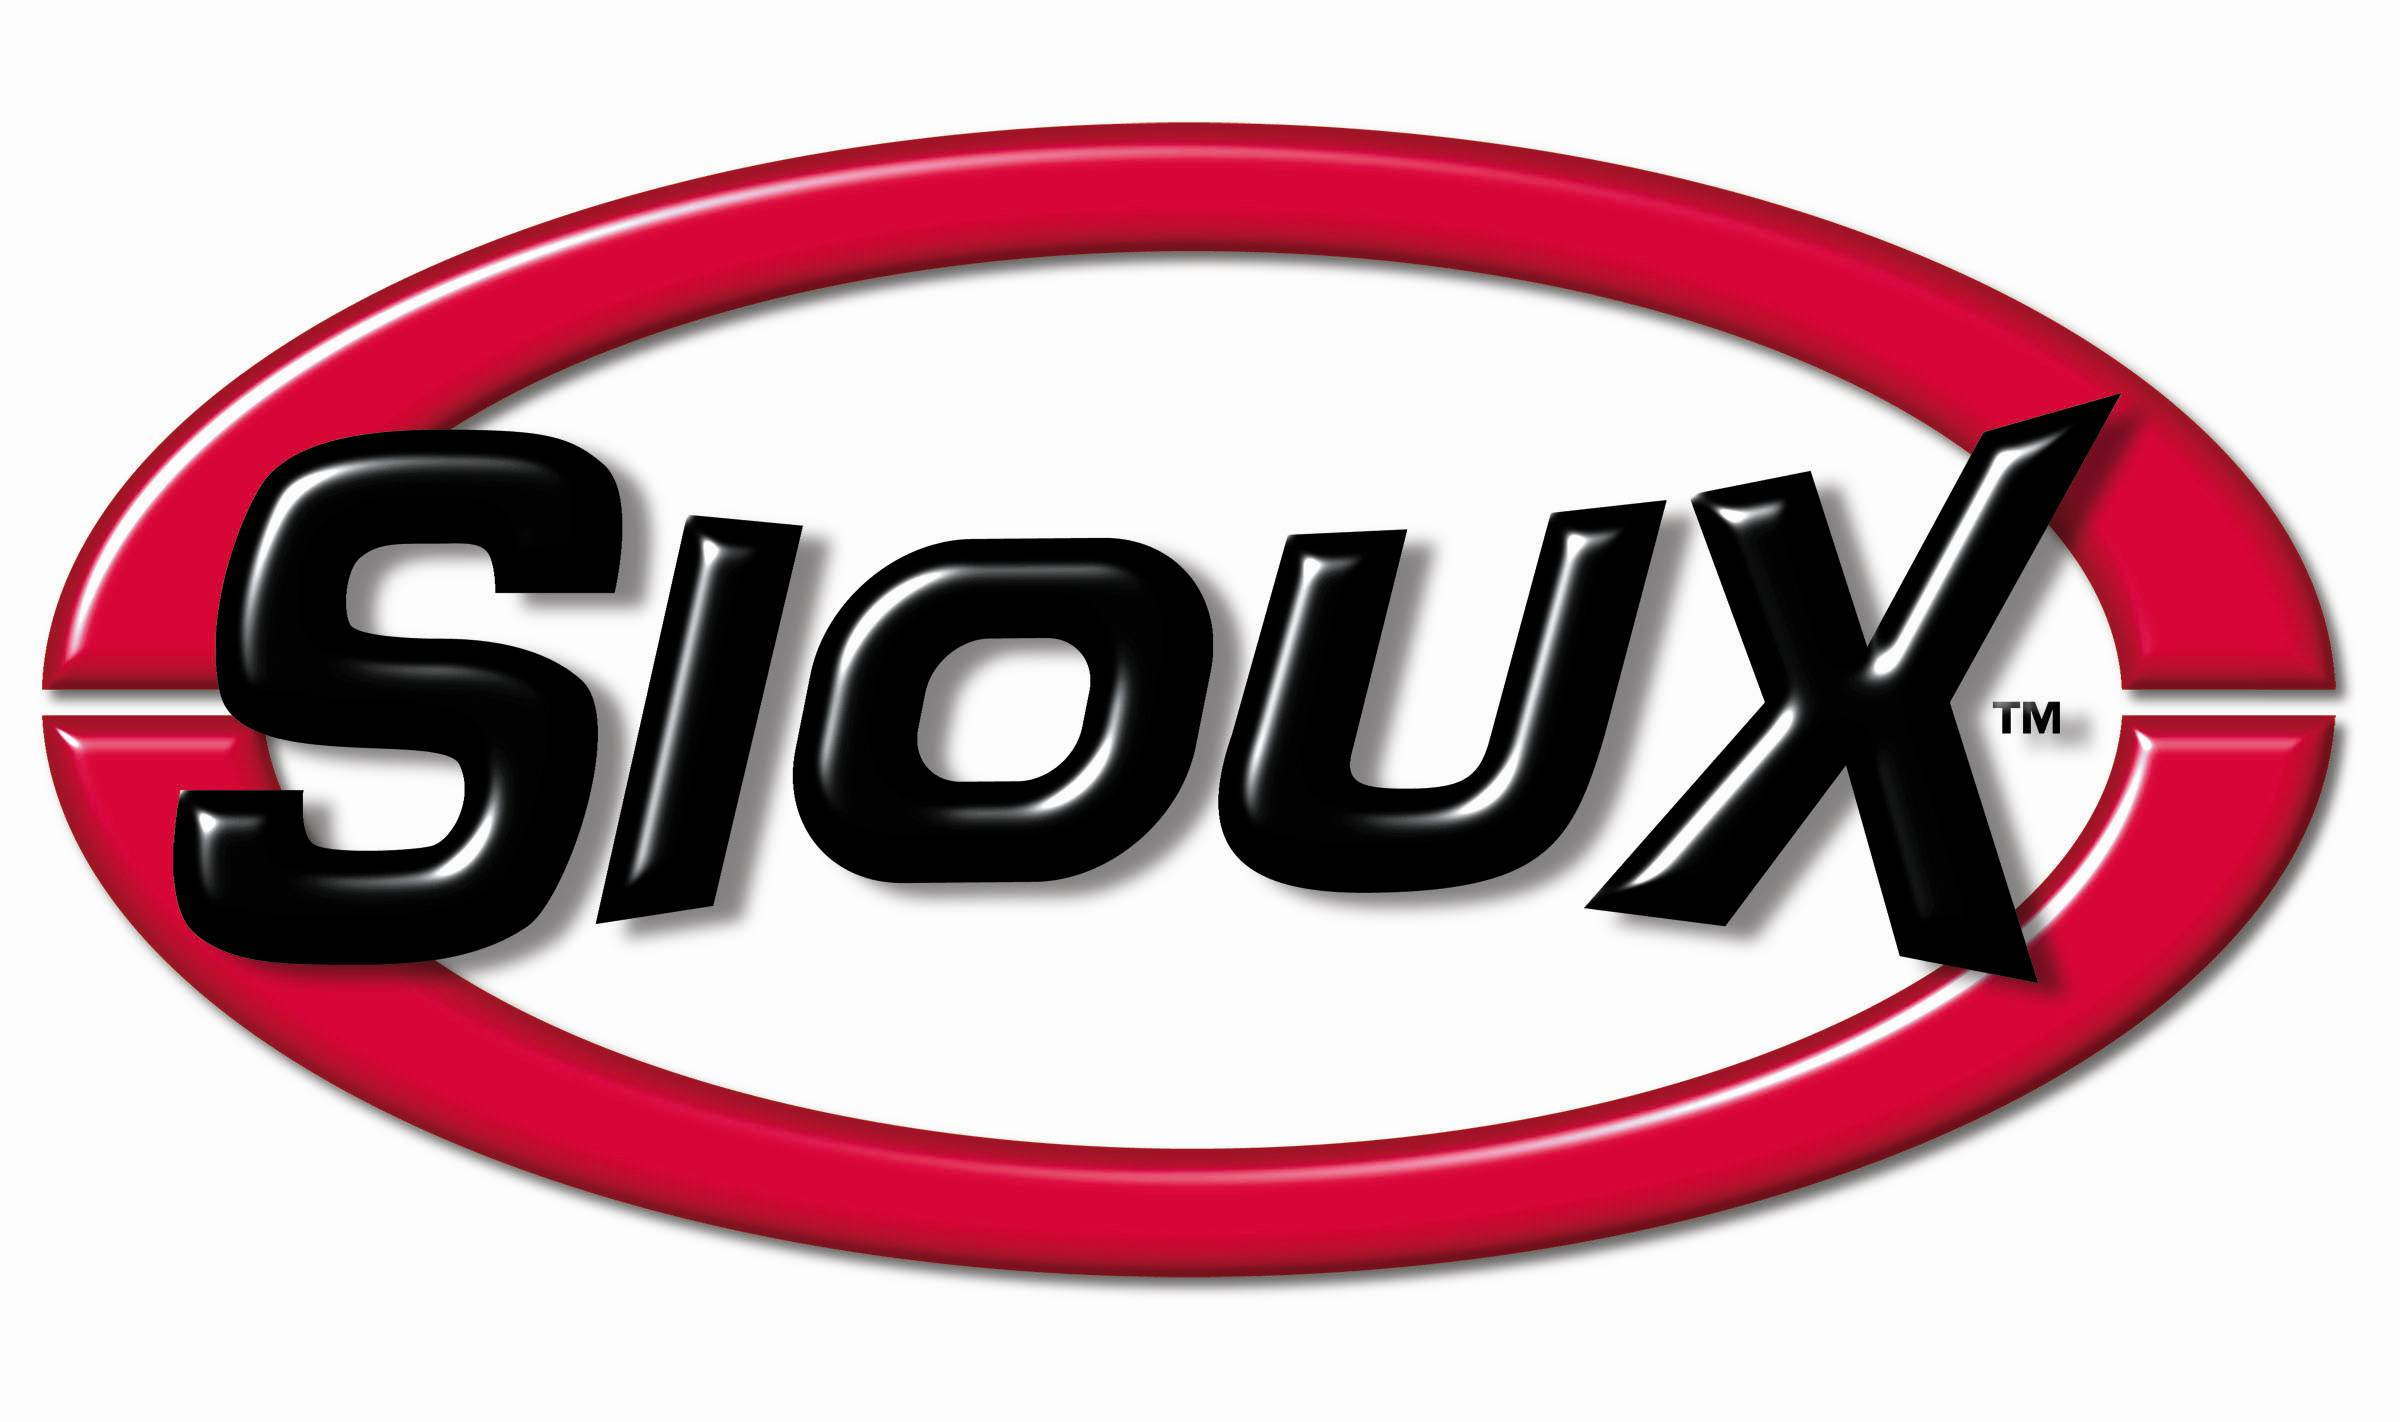 sioux-router-pneumatic-router.jpg